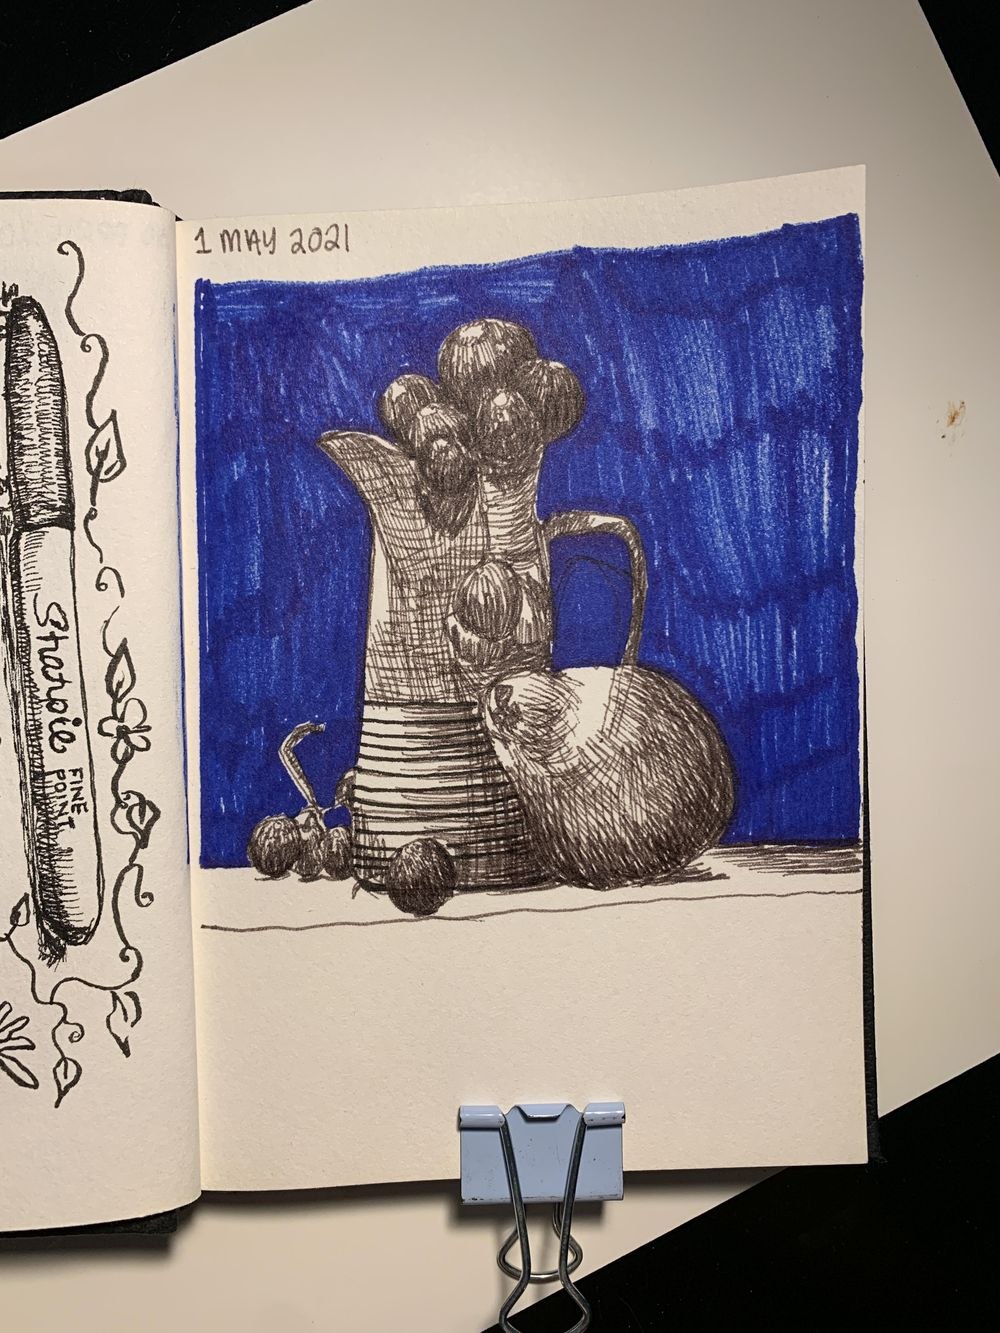 7 Days, 30 minutes of Drawing - image 8 - student project